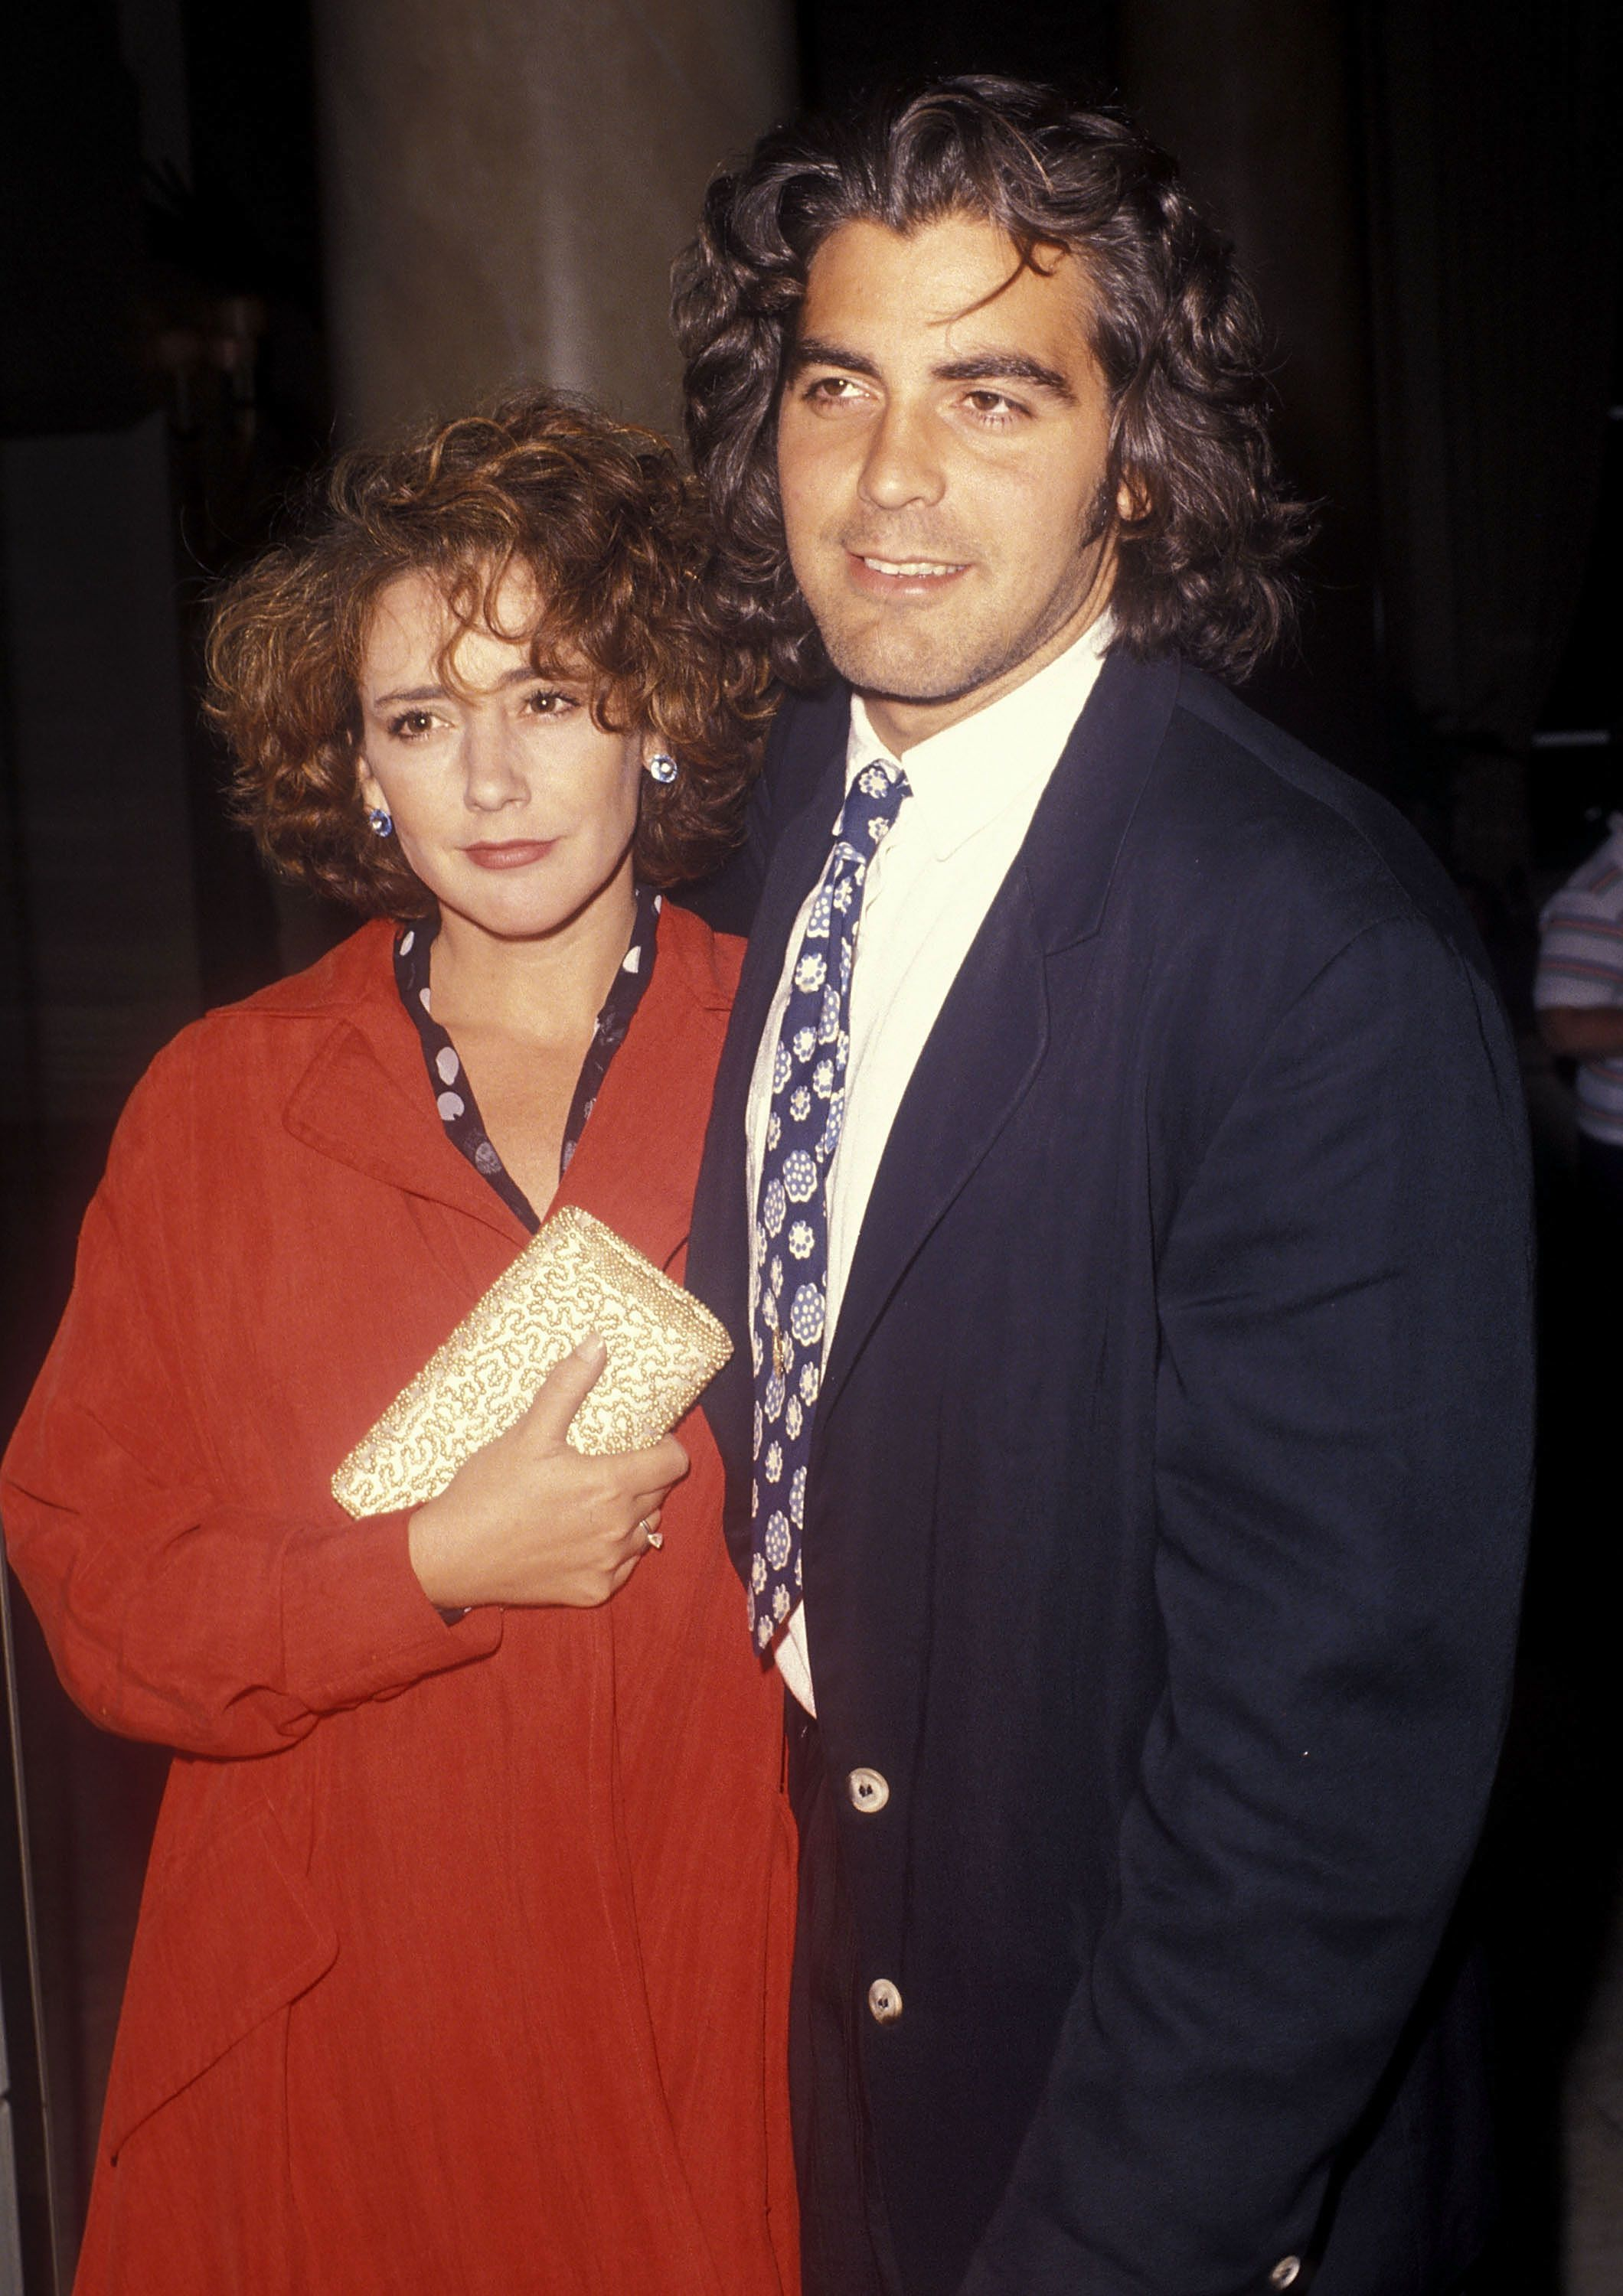 George Clooney and Talia Balsam in 1990.